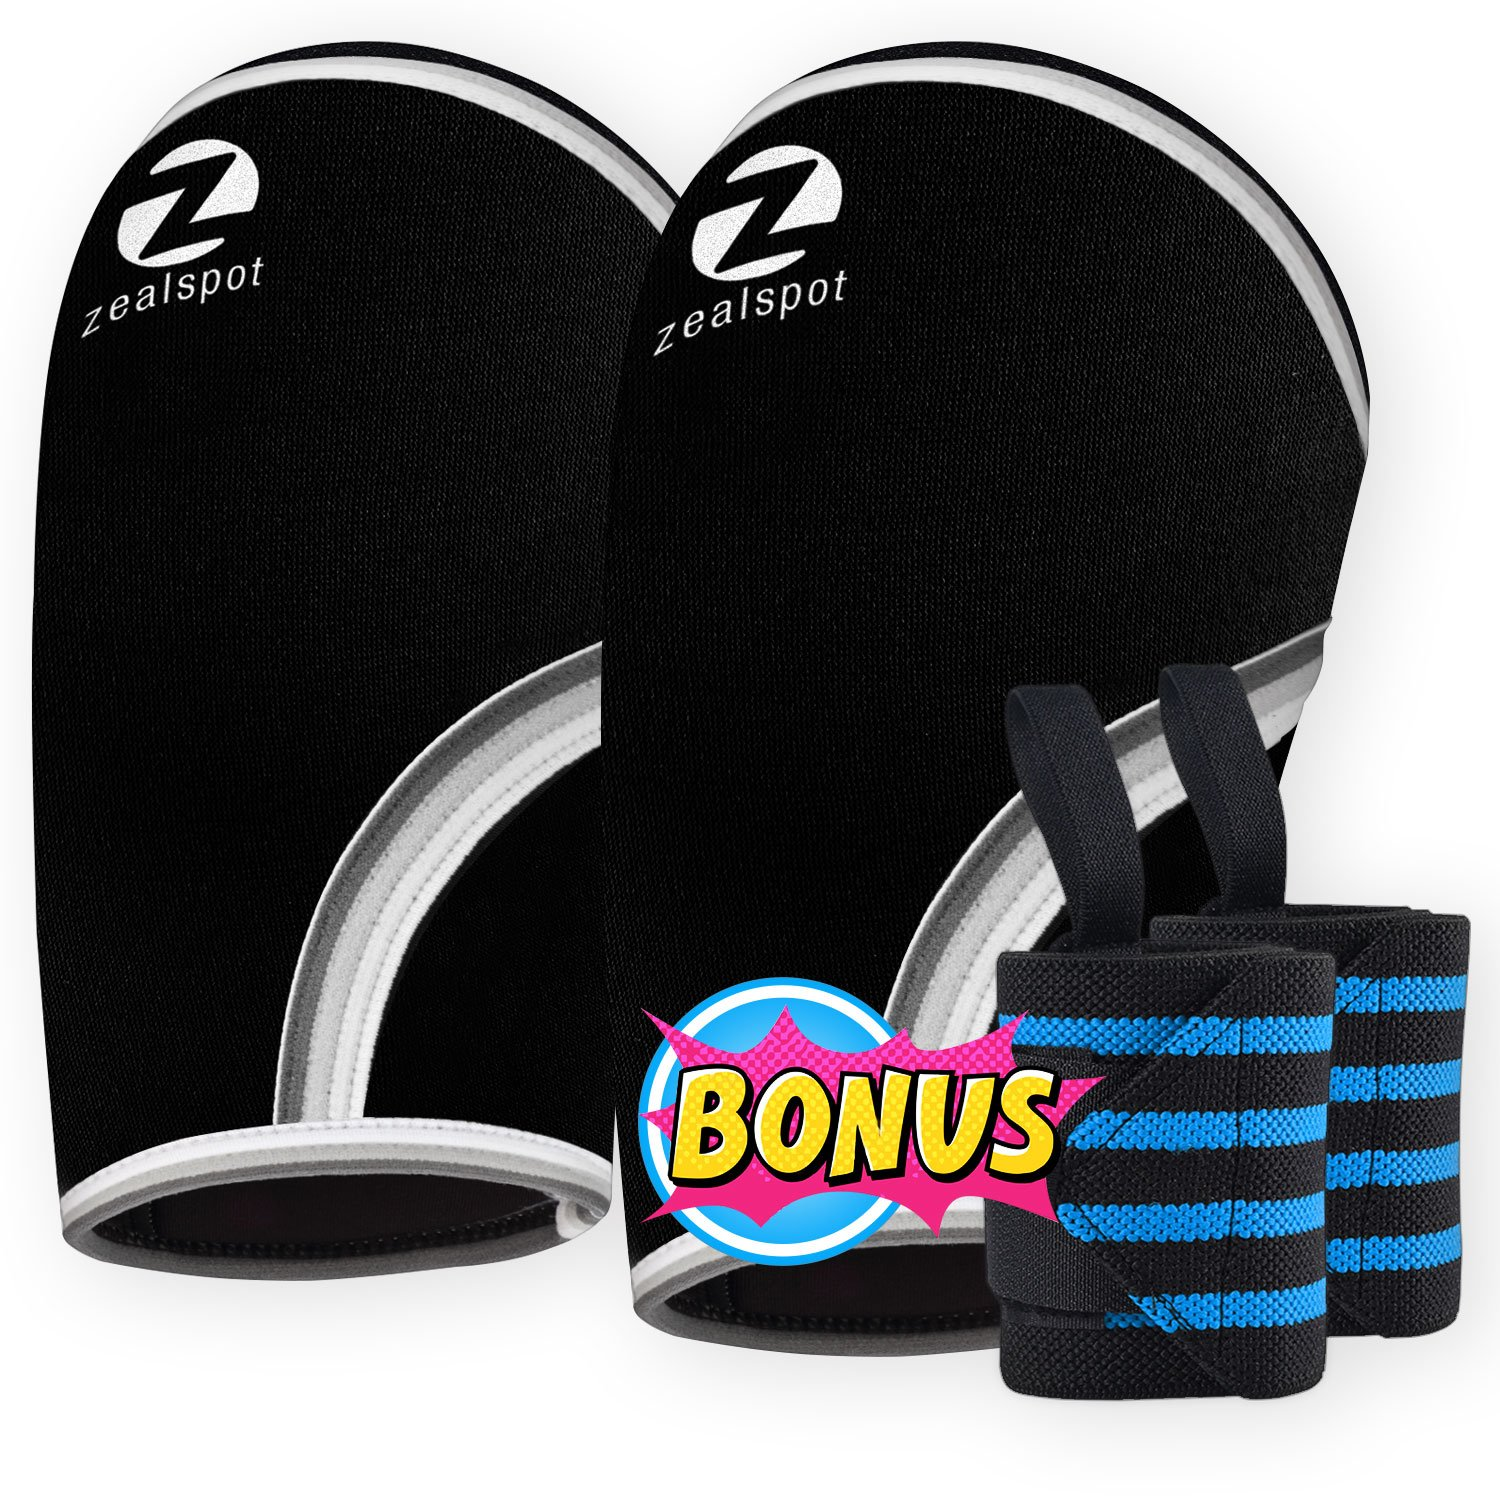 Elbow Sleeves (Pair)W/ Bonus Heavy Duty Wrist Wraps-Support & Compression for Weightlifting, Powerlifting, CrossFit,Bench Press and Tennis-5mm Neoprene Brace for Both Women & Men, Black (M)